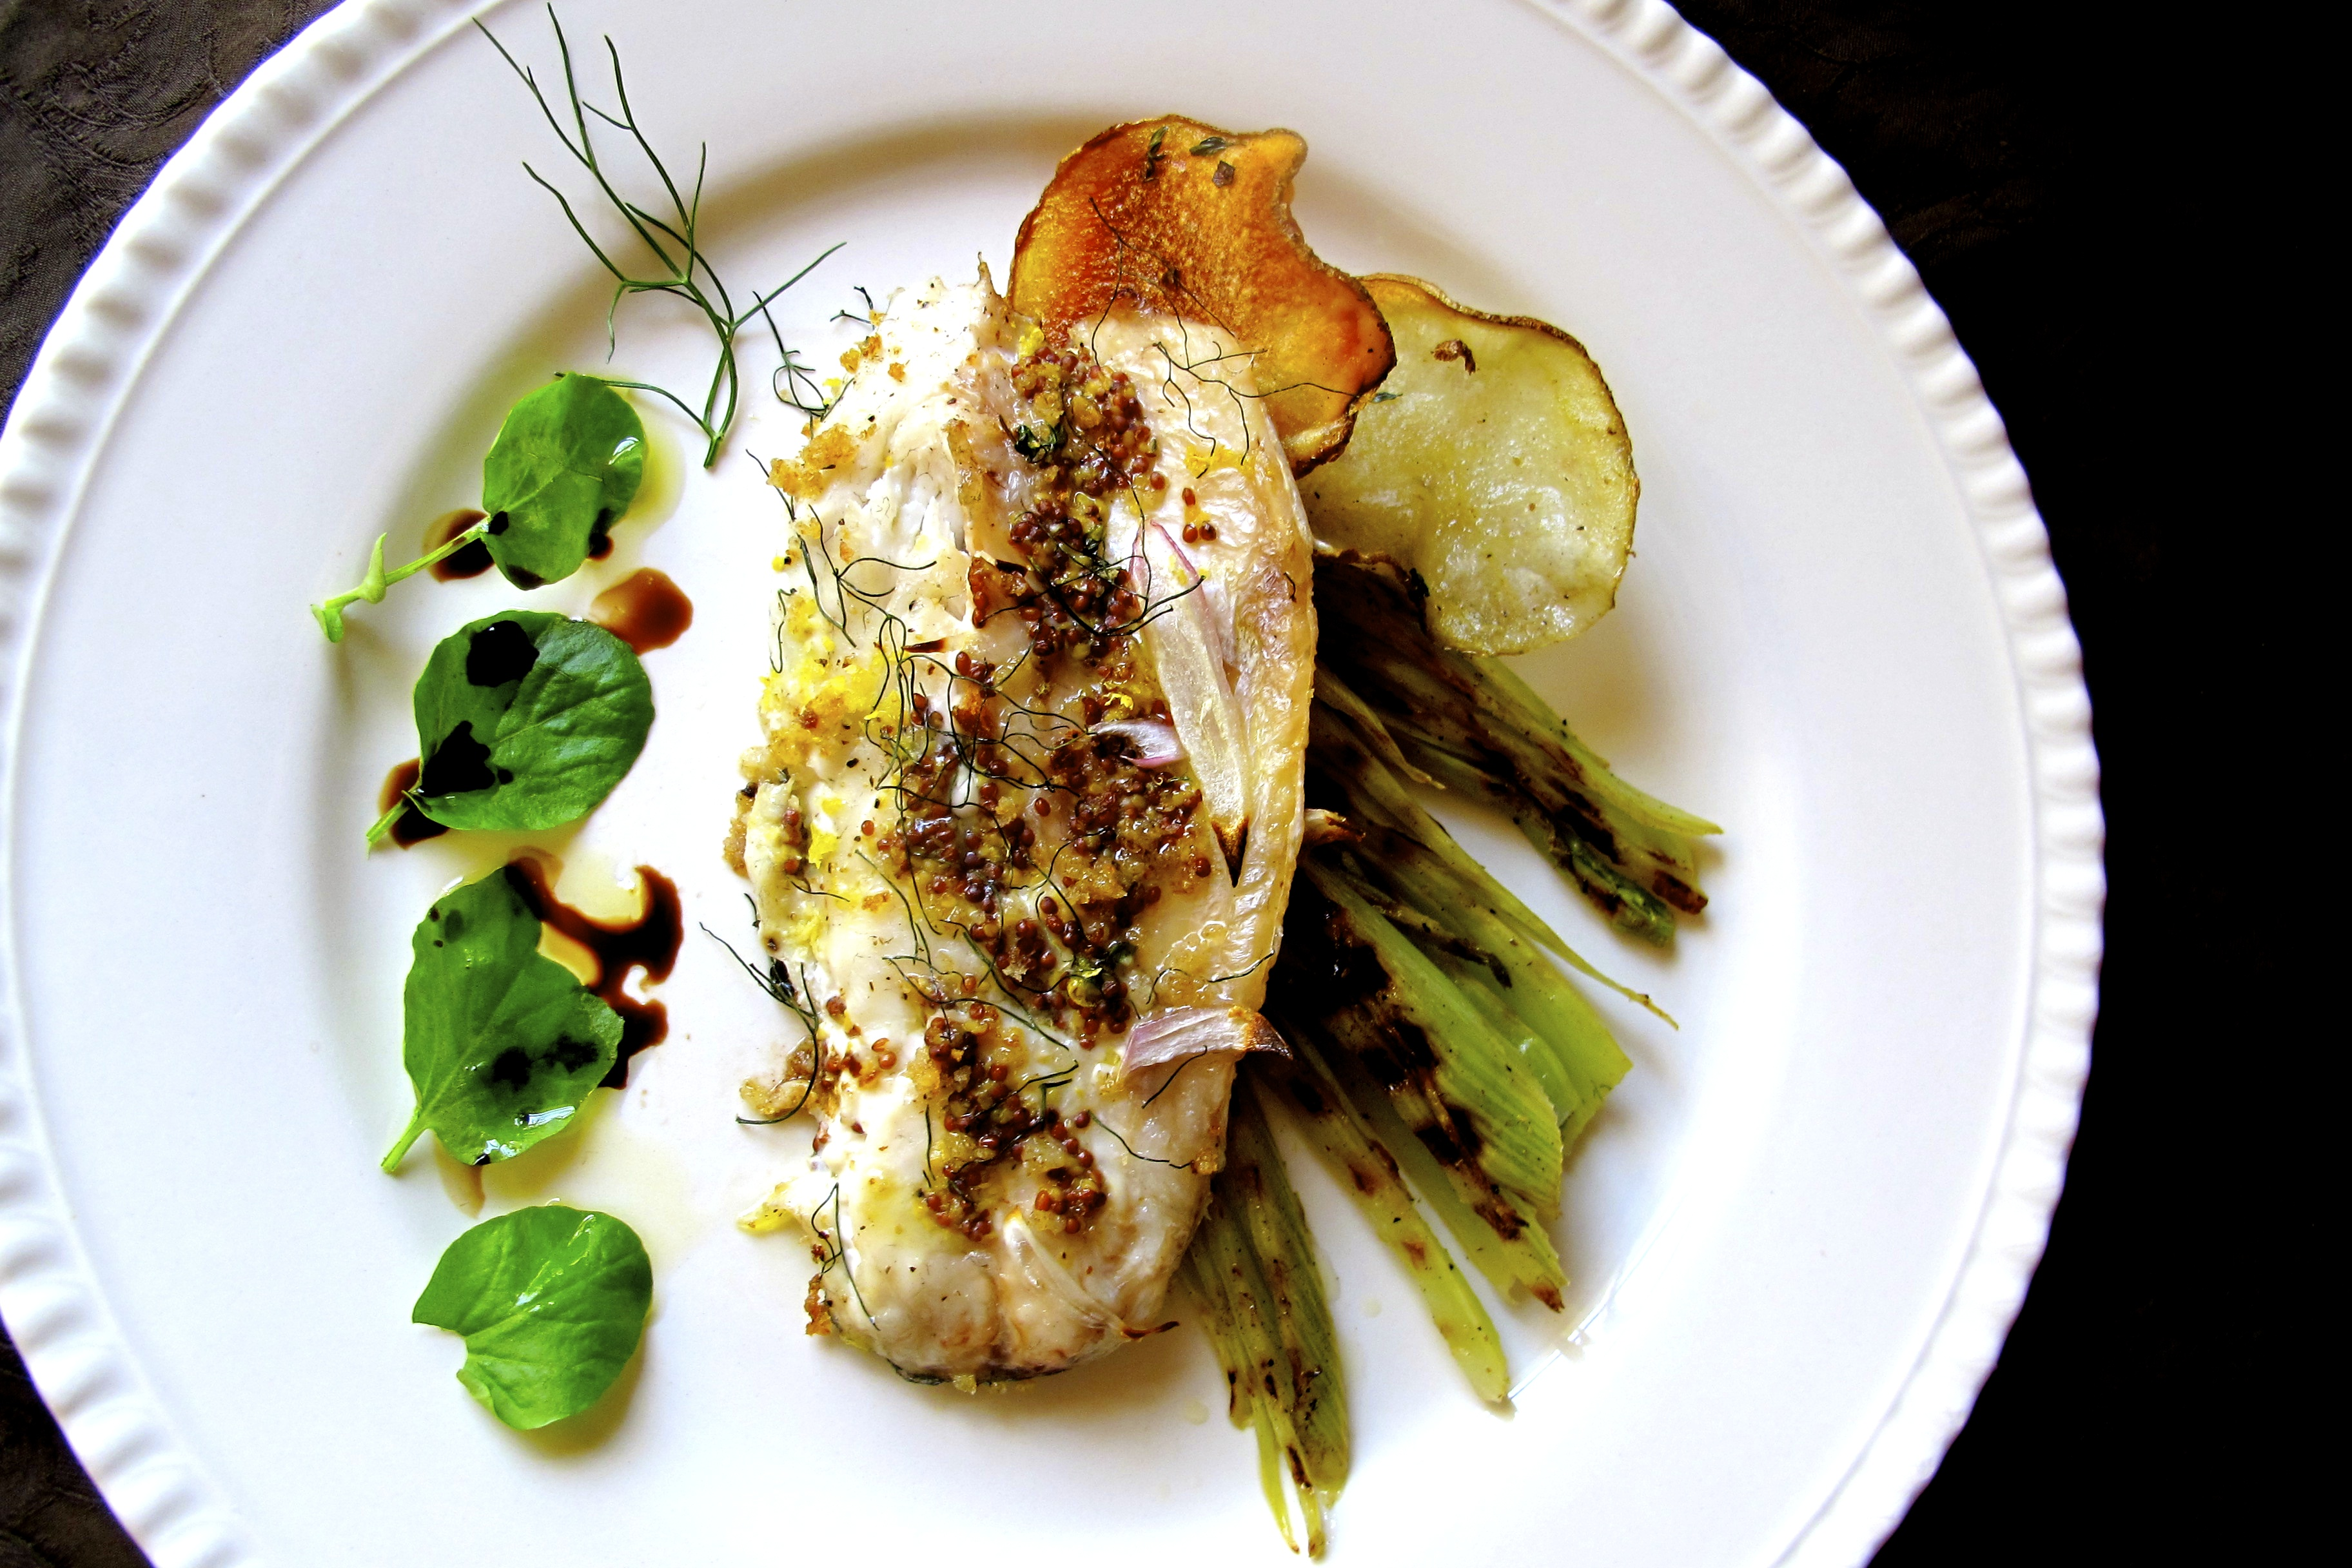 fish plating images